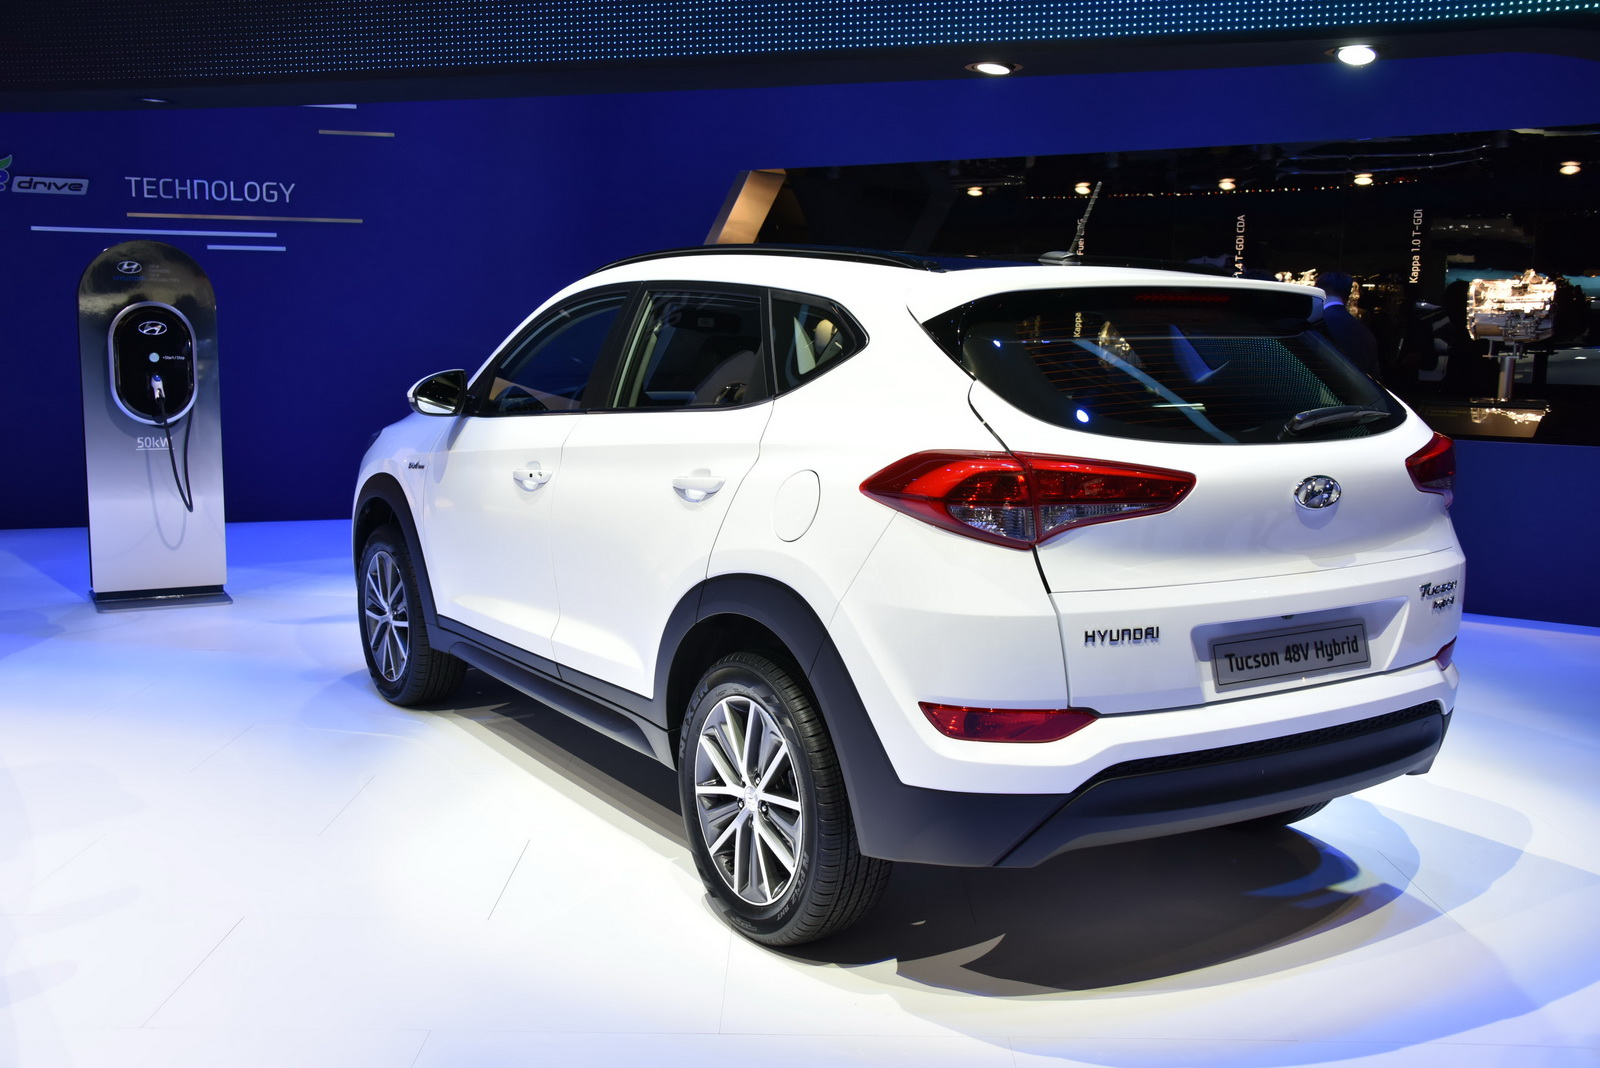 hyundai tucson 48v hybrid and plug in hybrid concepts showcased in geneva. Black Bedroom Furniture Sets. Home Design Ideas